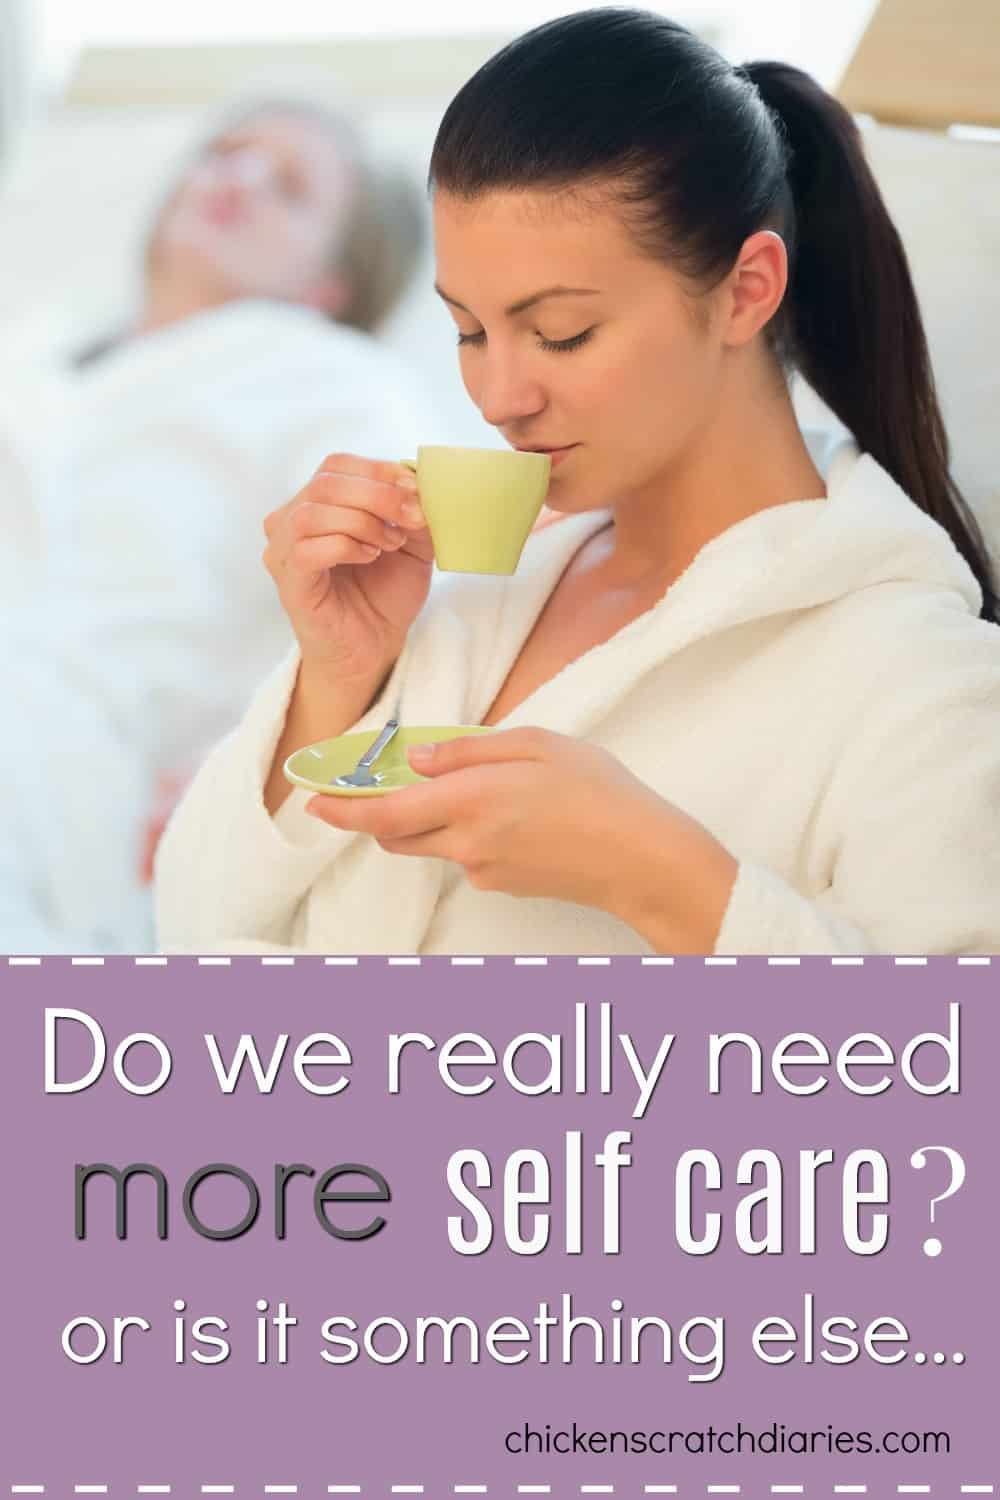 Self Care tips are everywhere but do Christian moms really need to focus on this trend or is there another perspective to consider? #SelfCare #Parenting #ChristianMoms #Encouragement #Faith